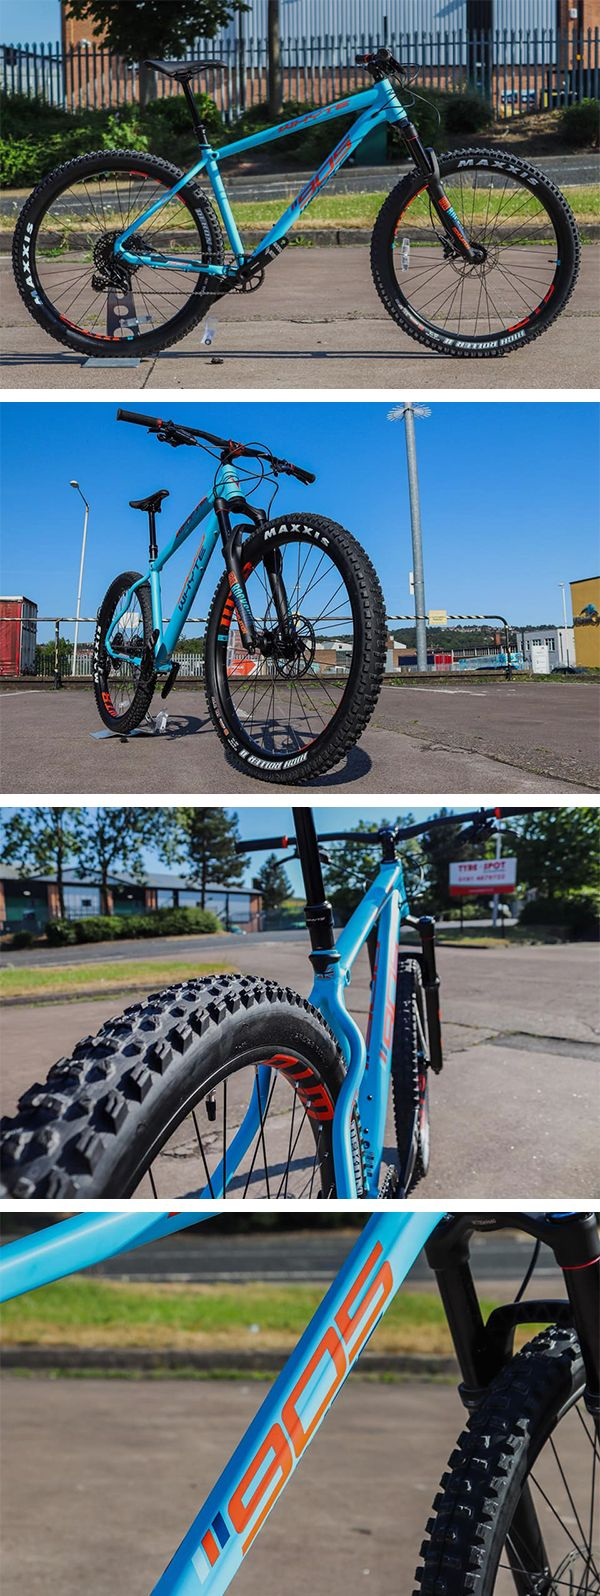 e74aa86b48e Whyte 905 review   gowes   Hardtail mountain bike, Trek mountain bike,  Mountian bike